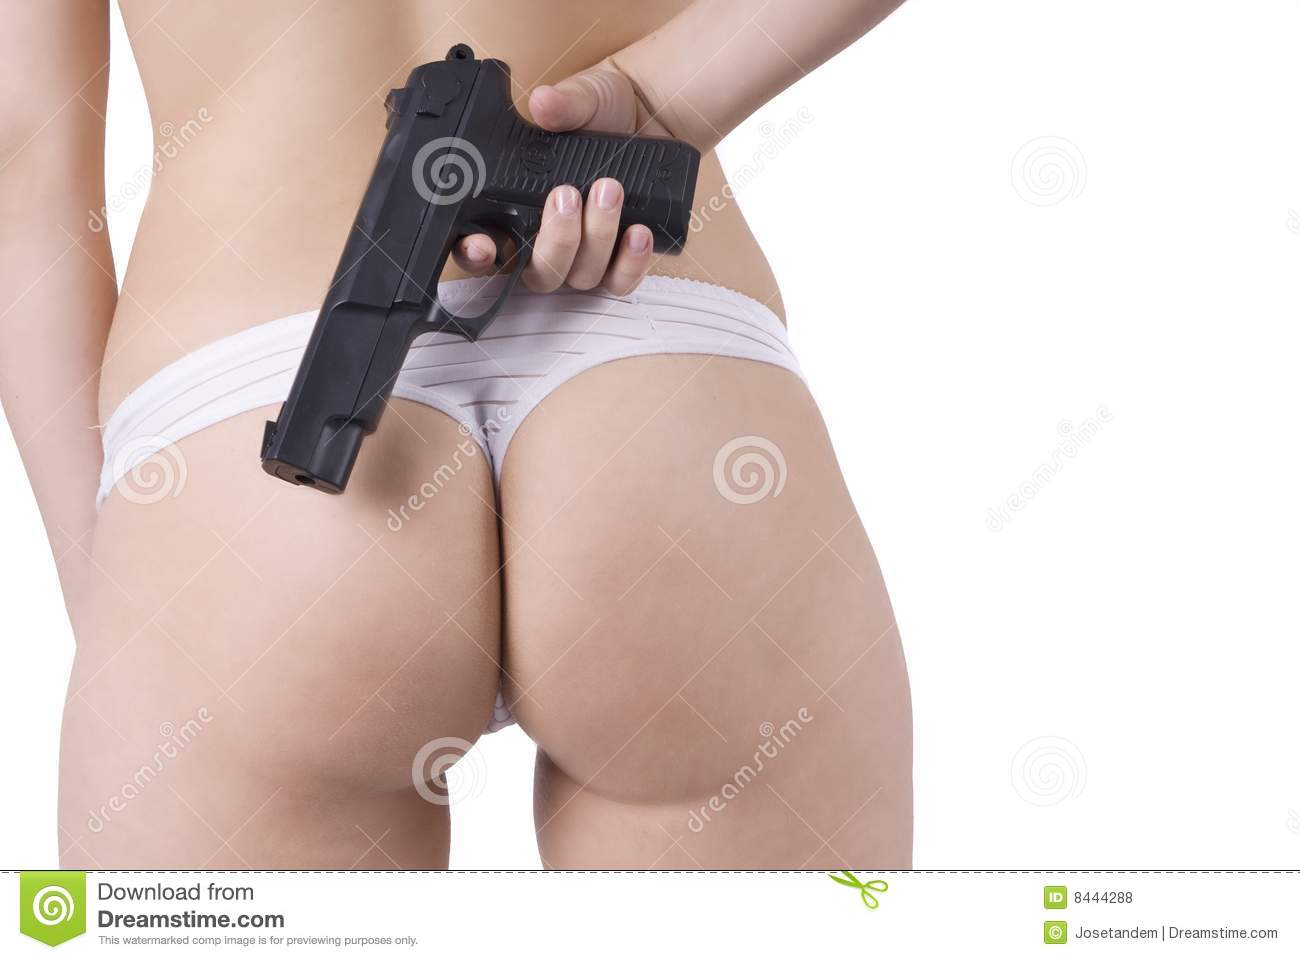 Woman back bottom and gun in lingerie